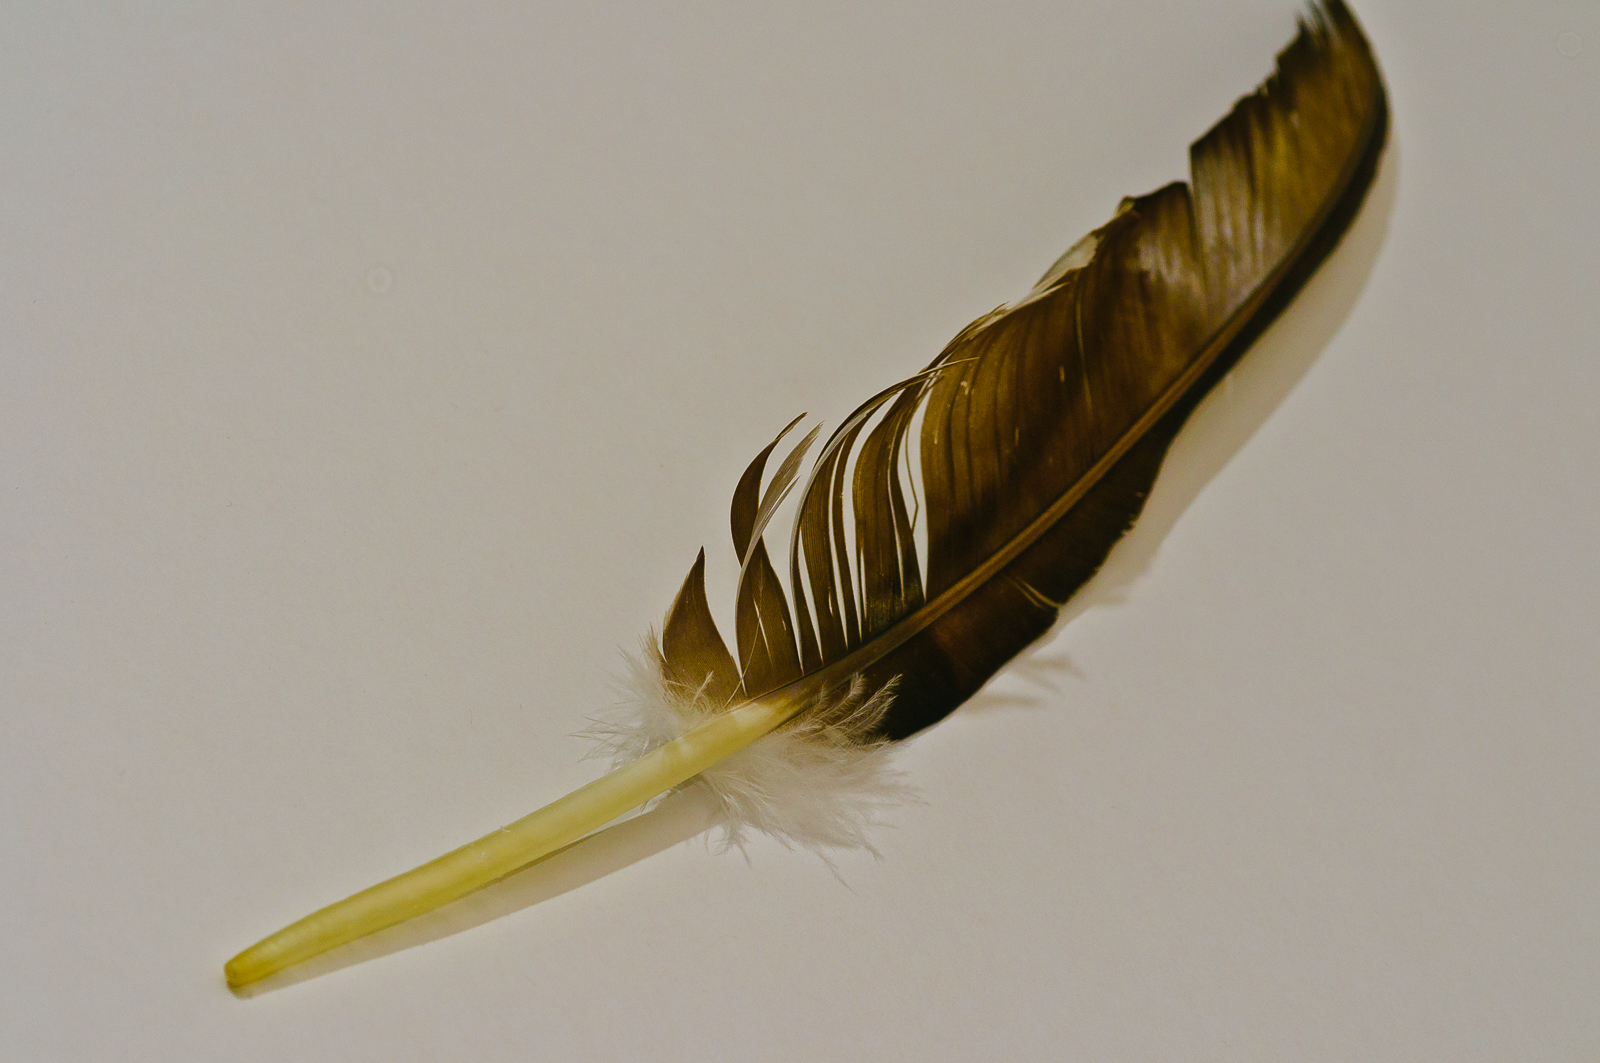 feather-0921